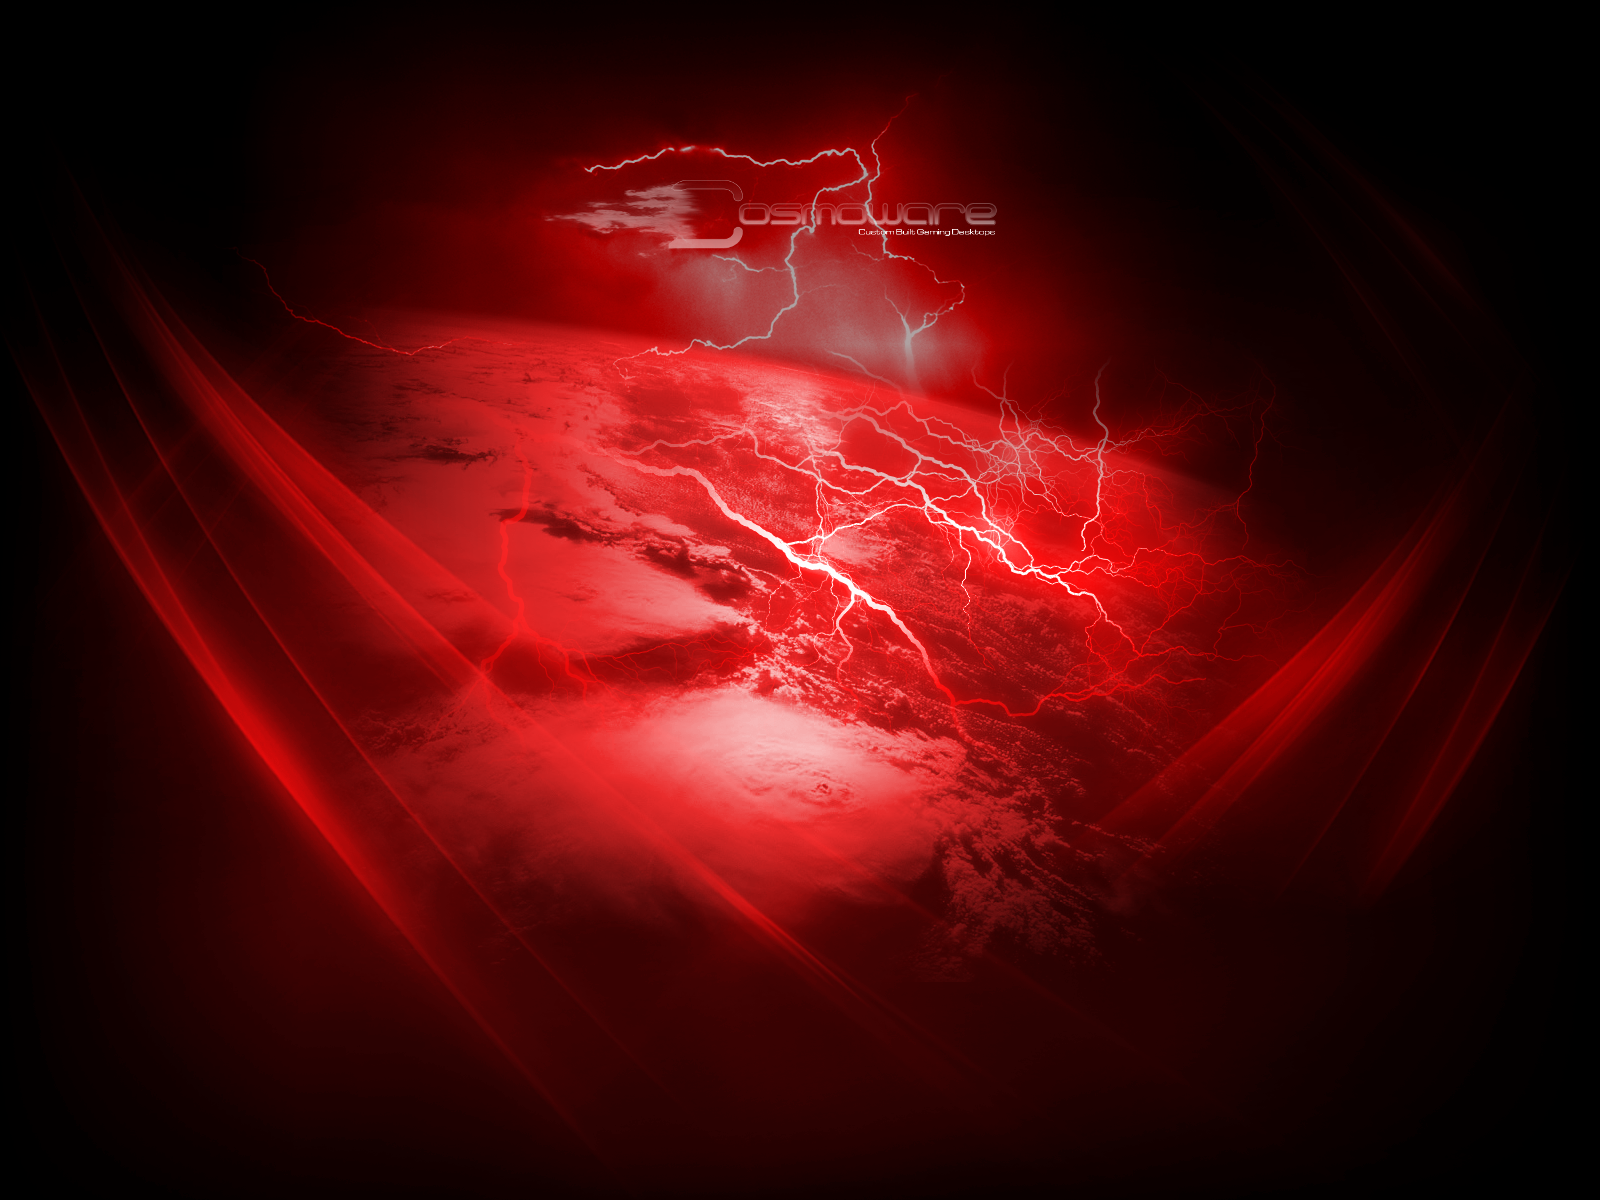 Cosmoware red Lightning storm by Cosmoware-Design on DeviantArt